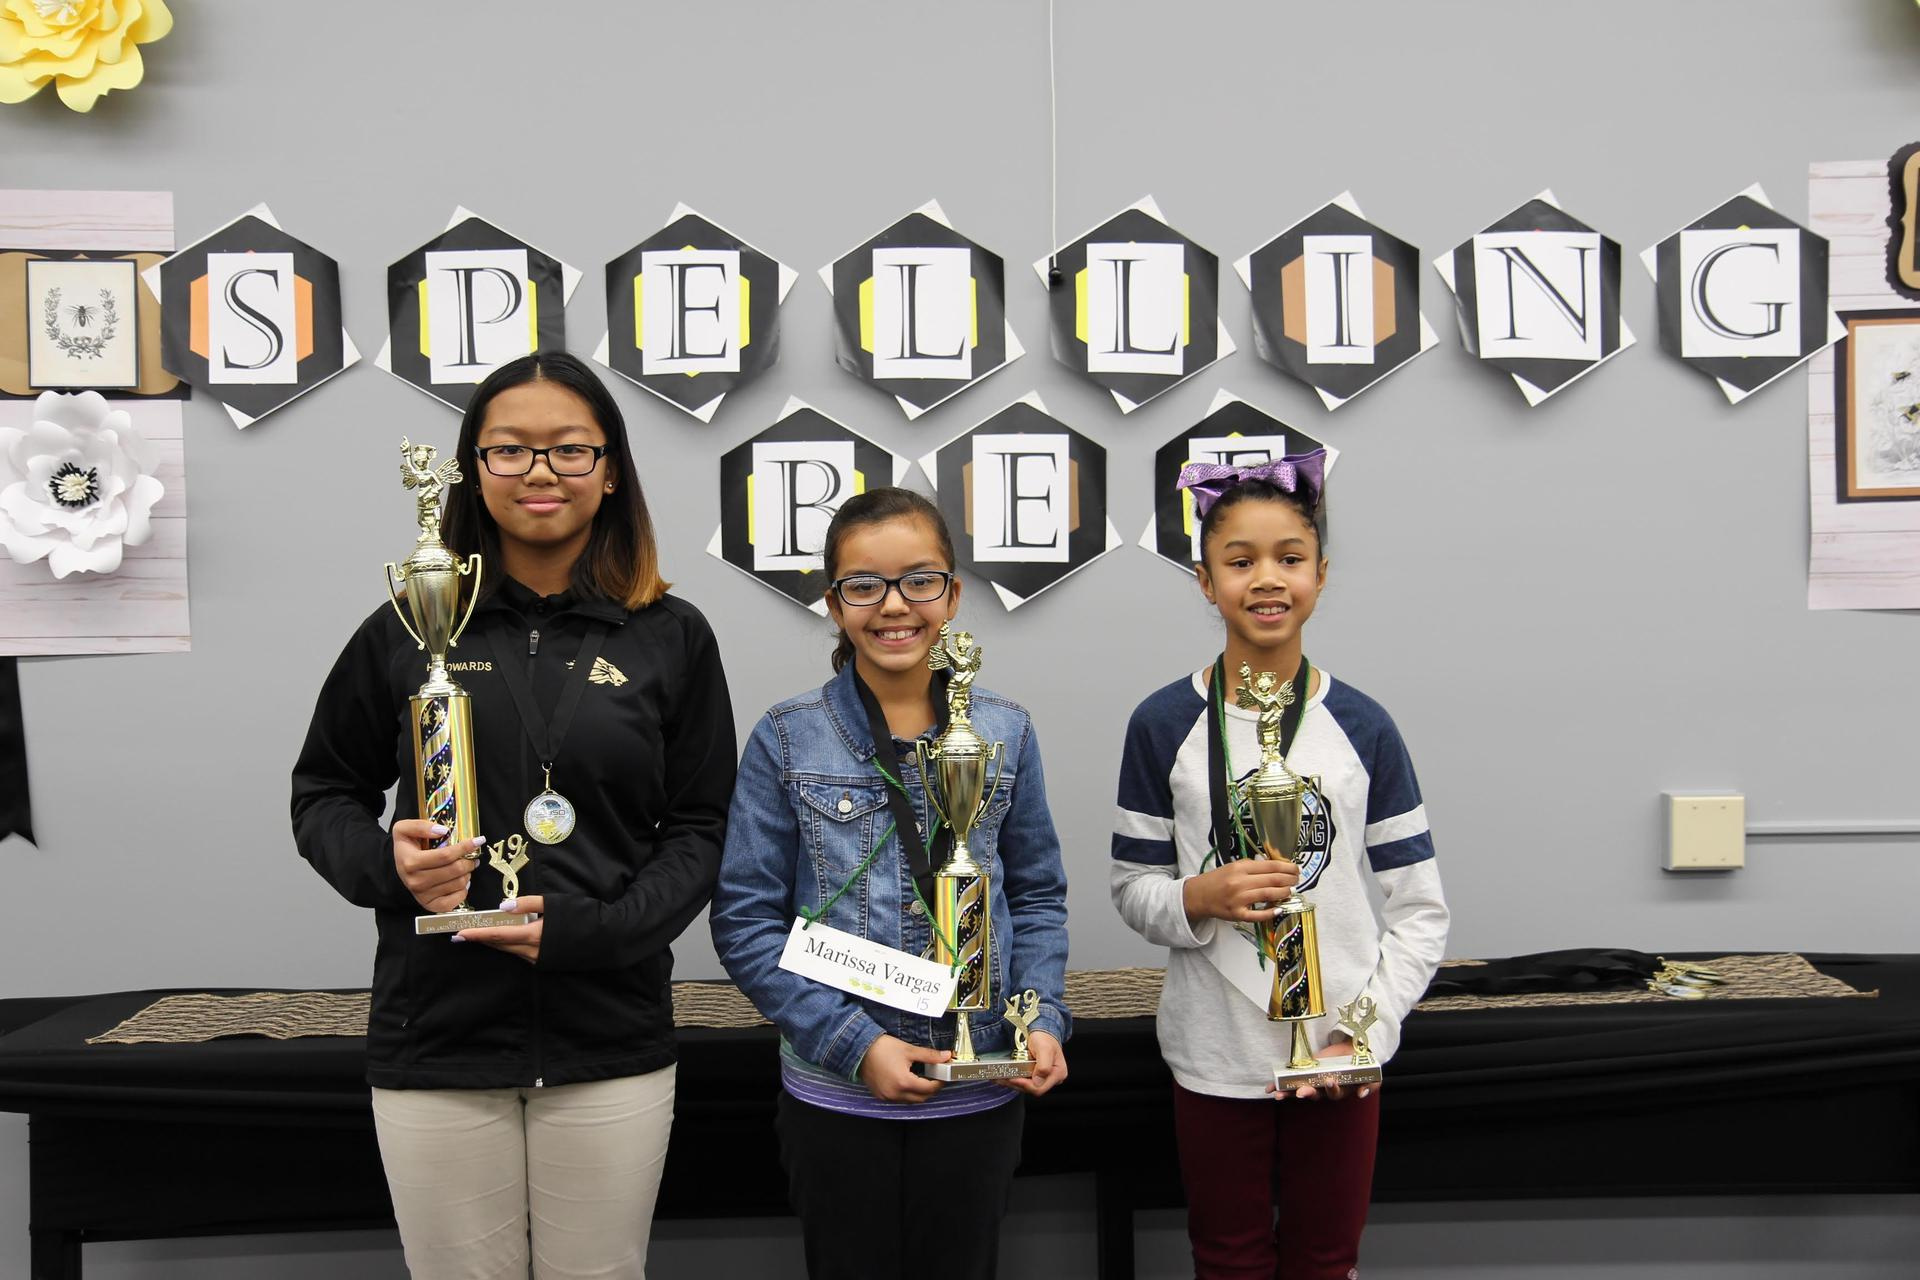 1st, 2nd, & 3rd place winners